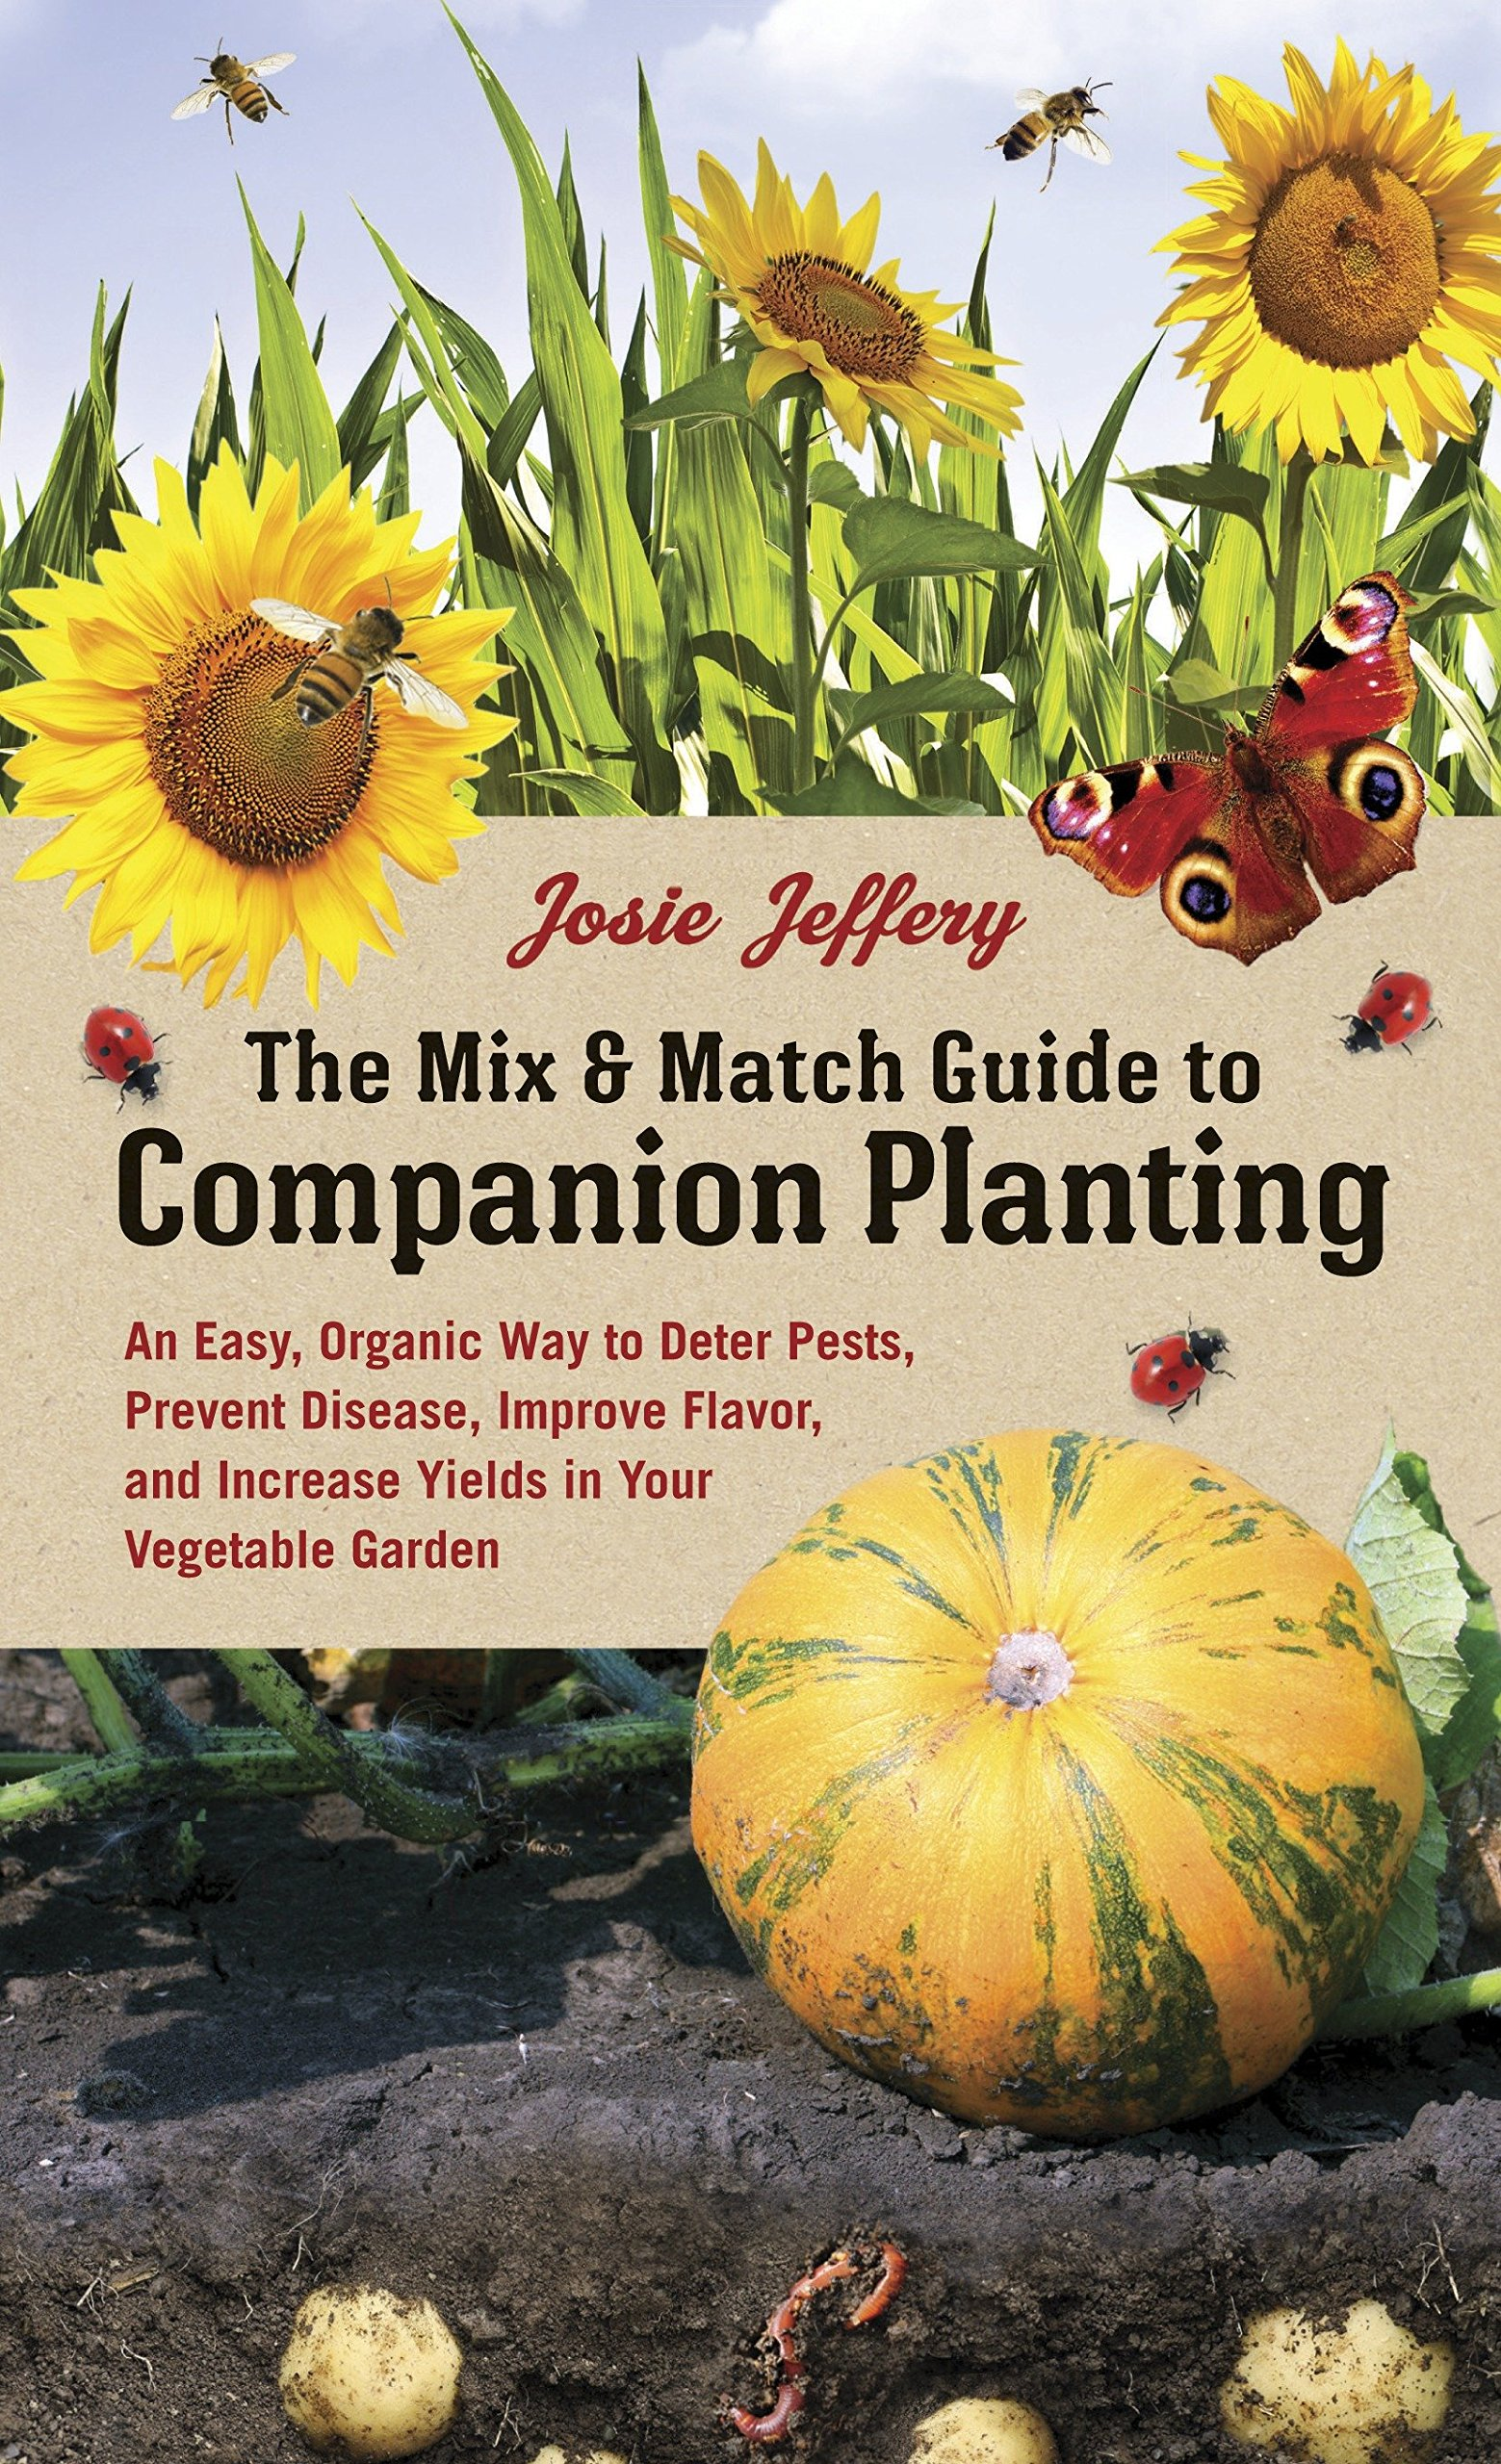 The Mix & Match Guide to Companion Planting: An Easy, Organic Way to Deter Pests, Prevent Disease, Improve Flavor, and Increase Yields in Your Vegetable Garden Hardcover-spiral – March 11, 2014 Josie Jeffery Ten Speed Press 1607746336 Techniques